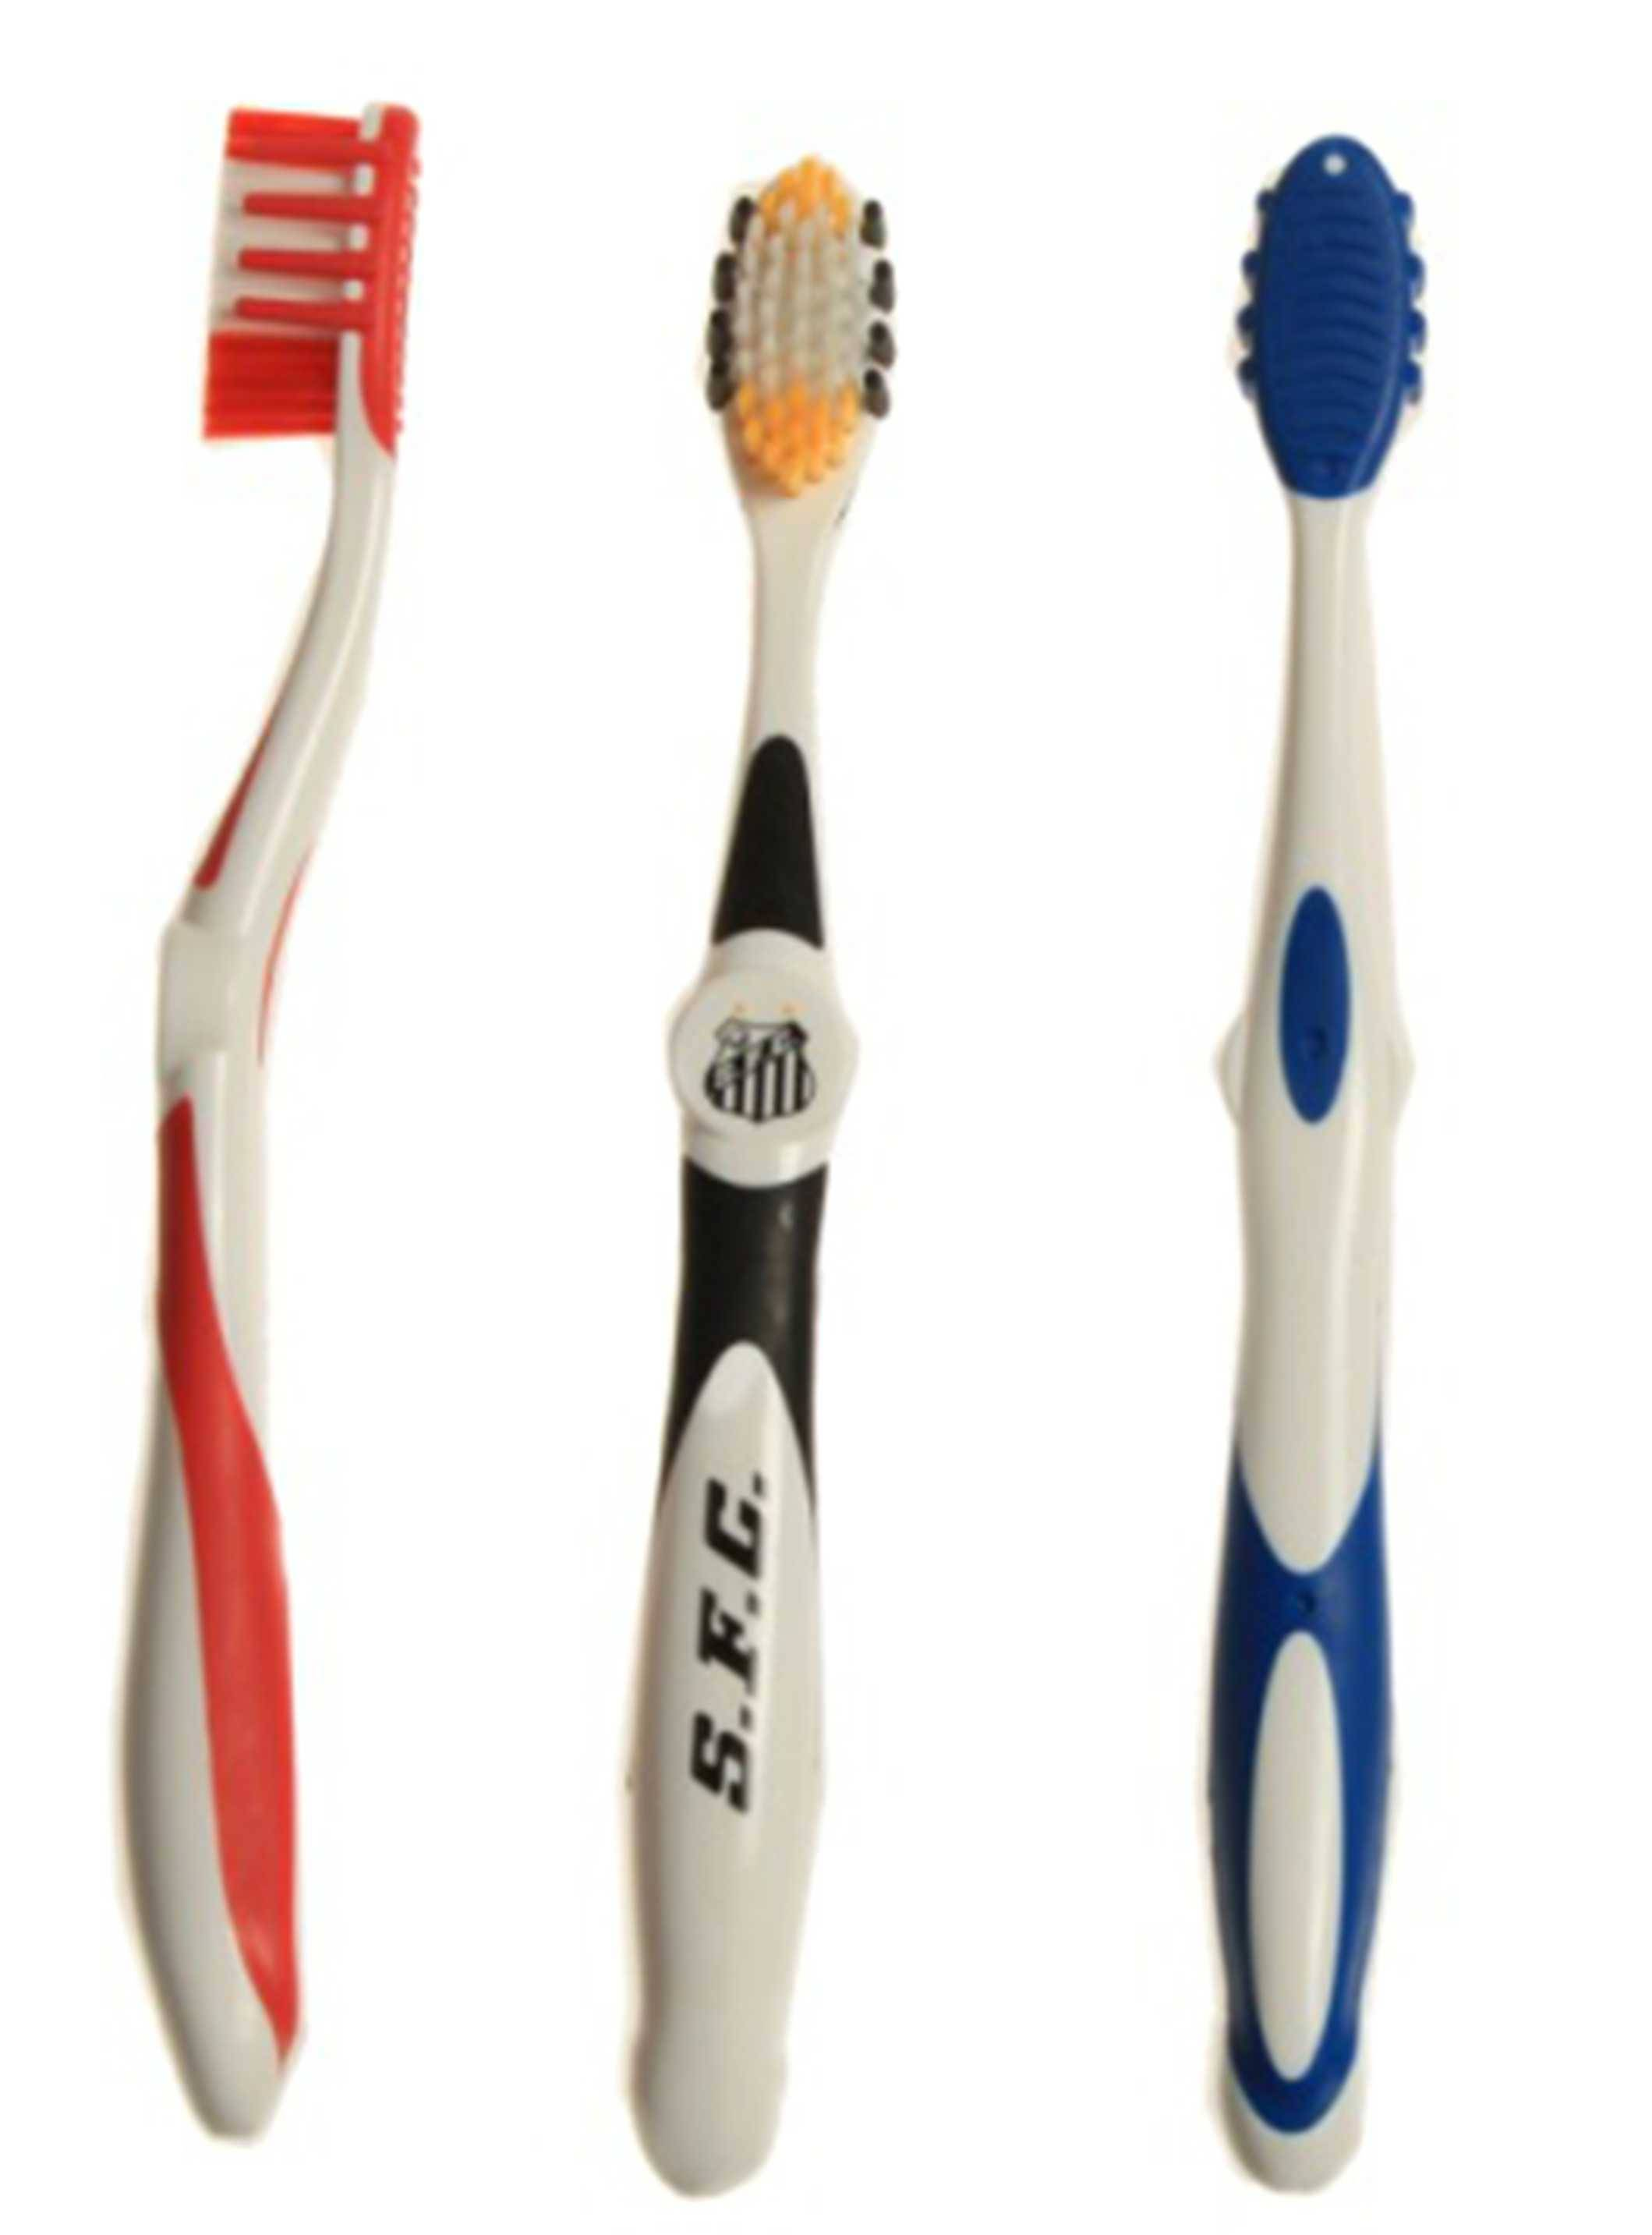 Toothbrush with Tongue Scrapper and Rubber tip massagers on head